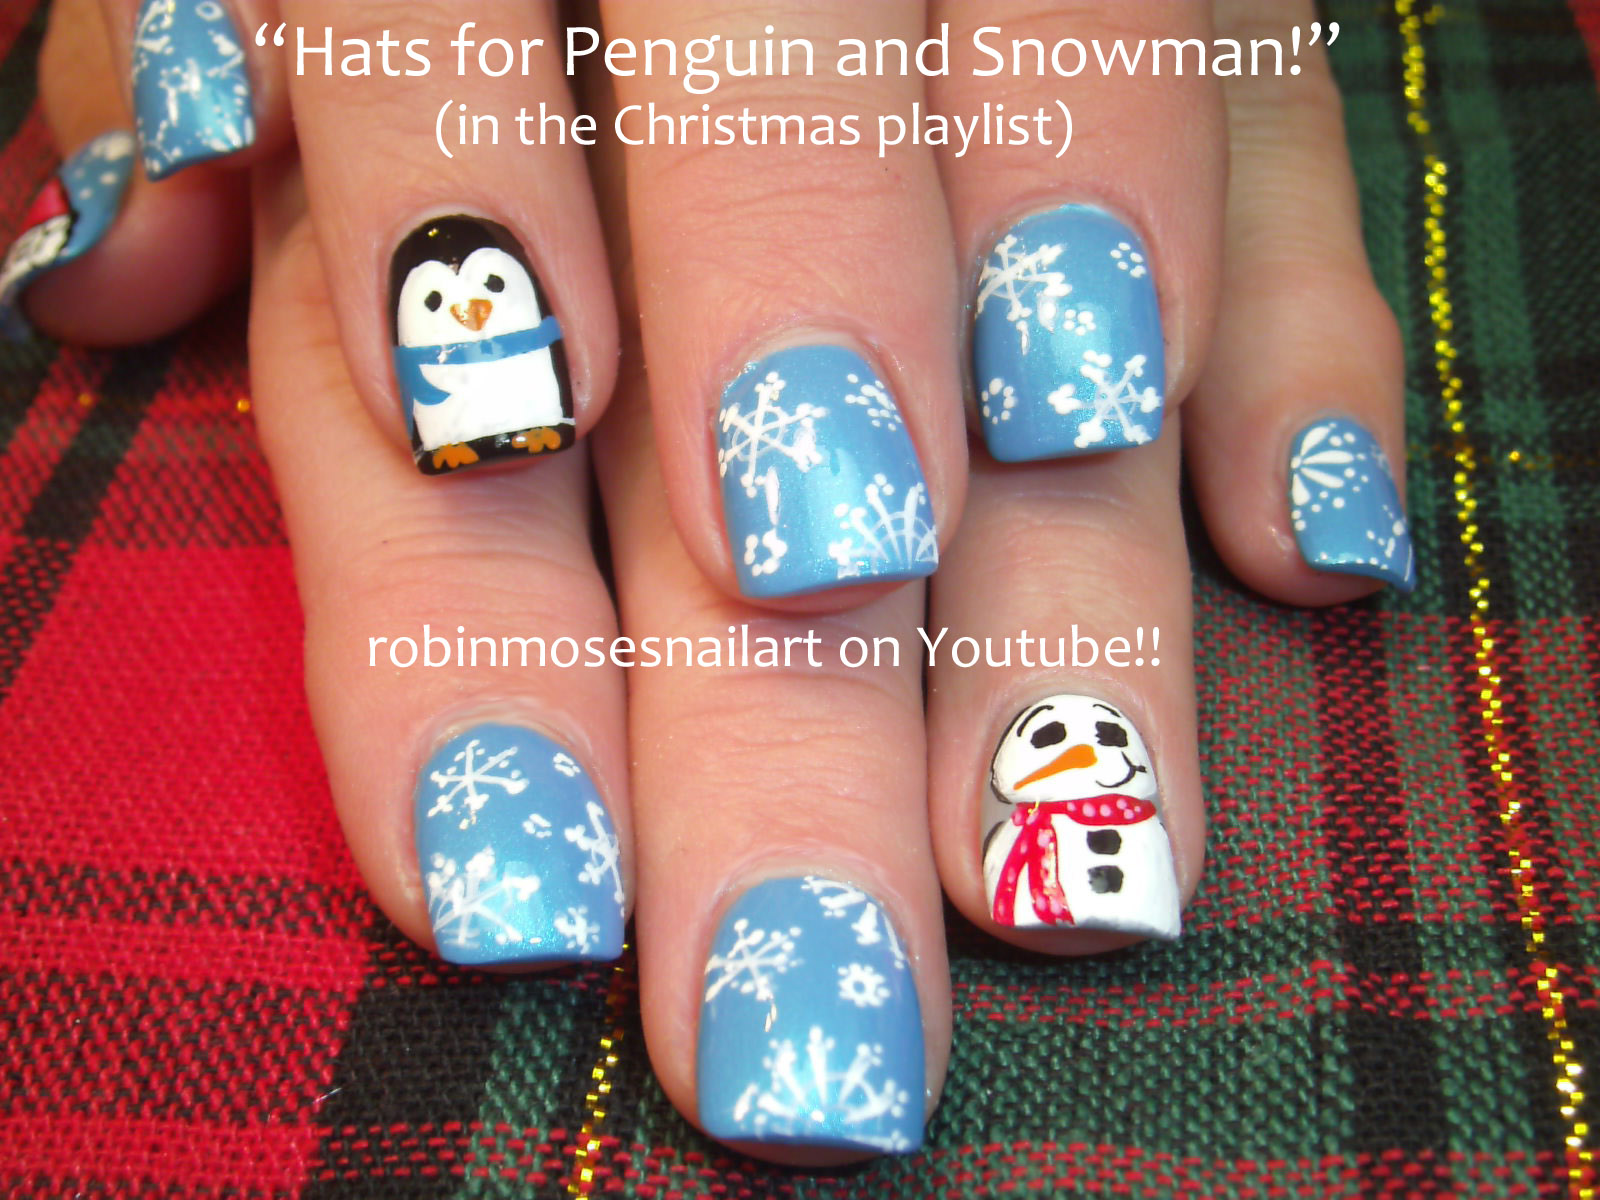 1bpblogspot Easy Christmas Nail Art Design